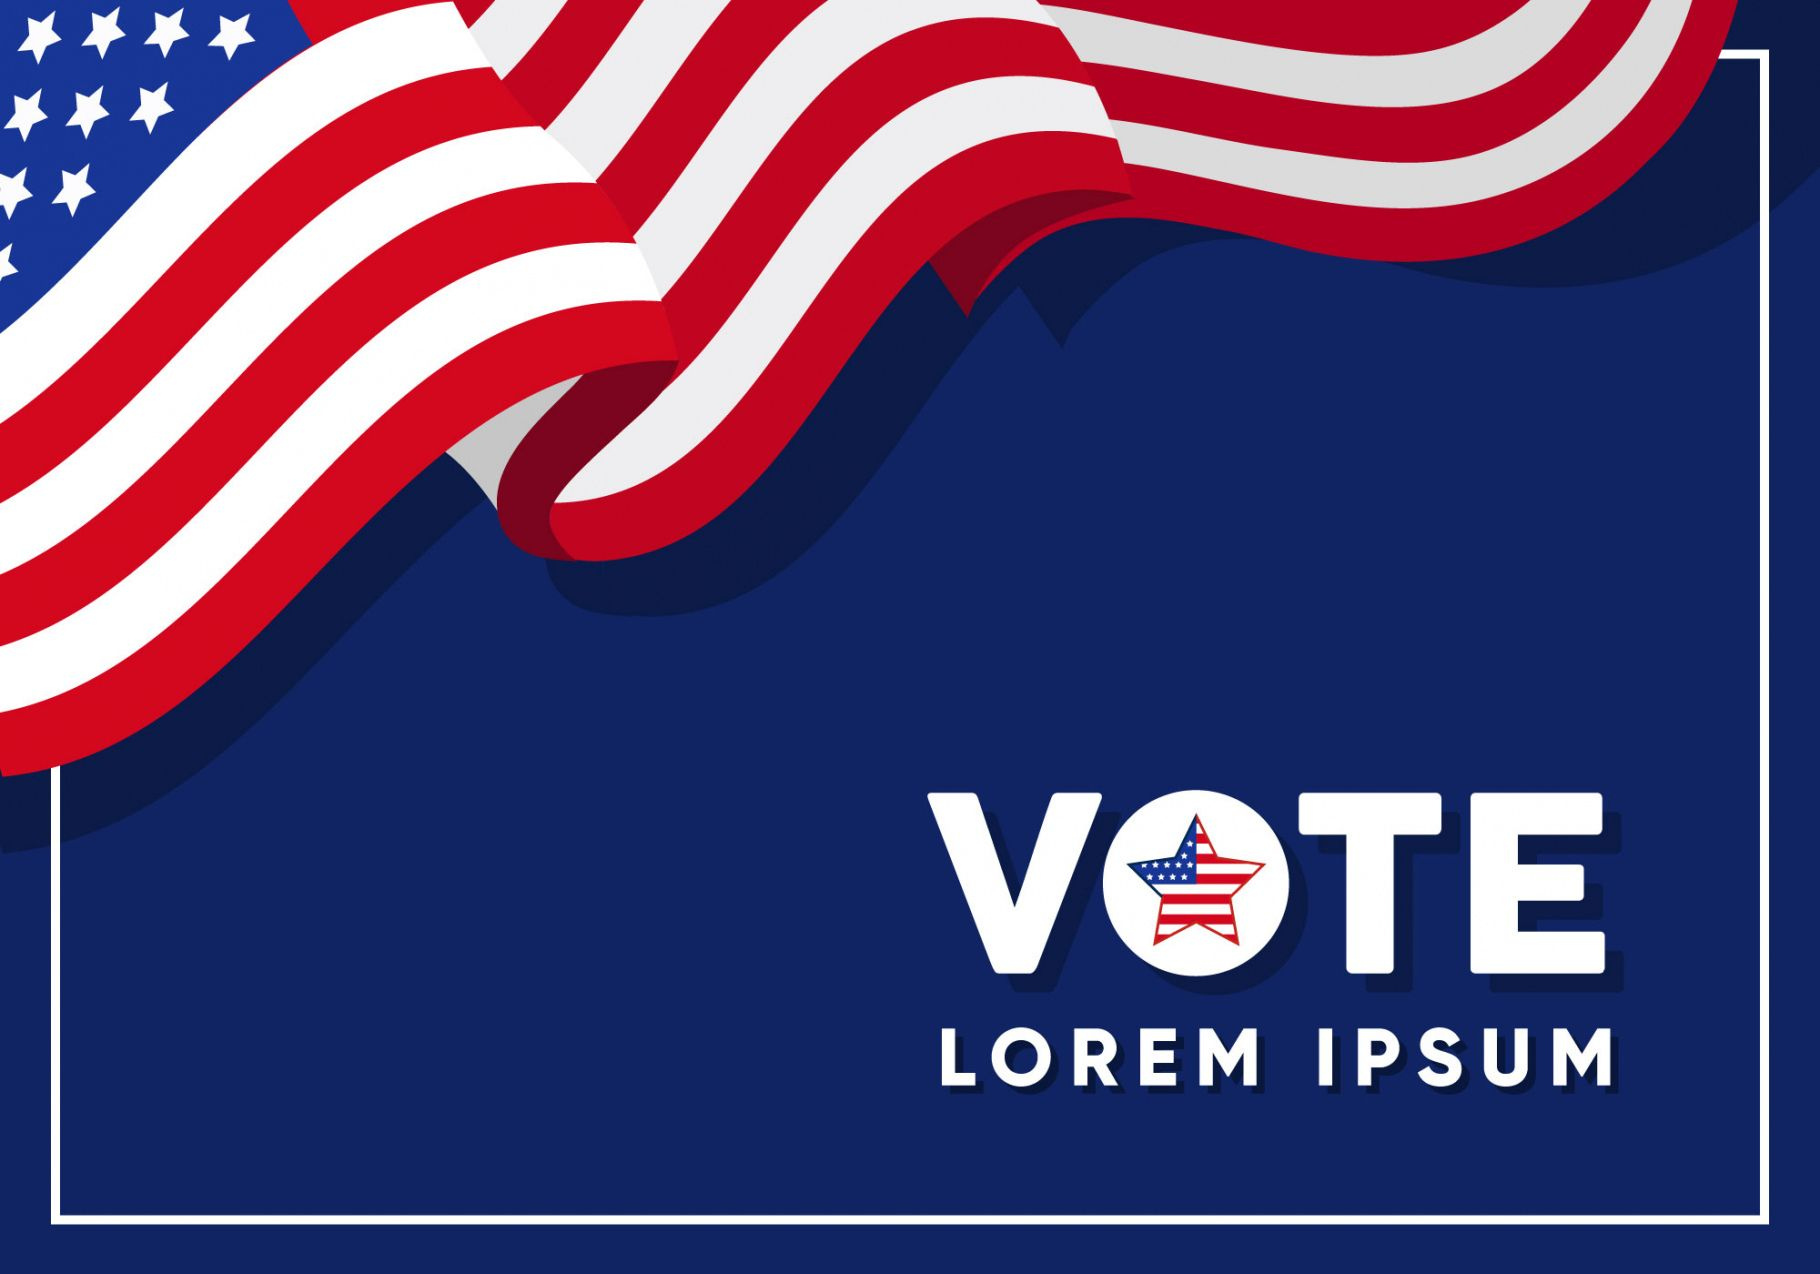 sample usa campaign sign template  download free vectors clipart presidential campaign poster template excel